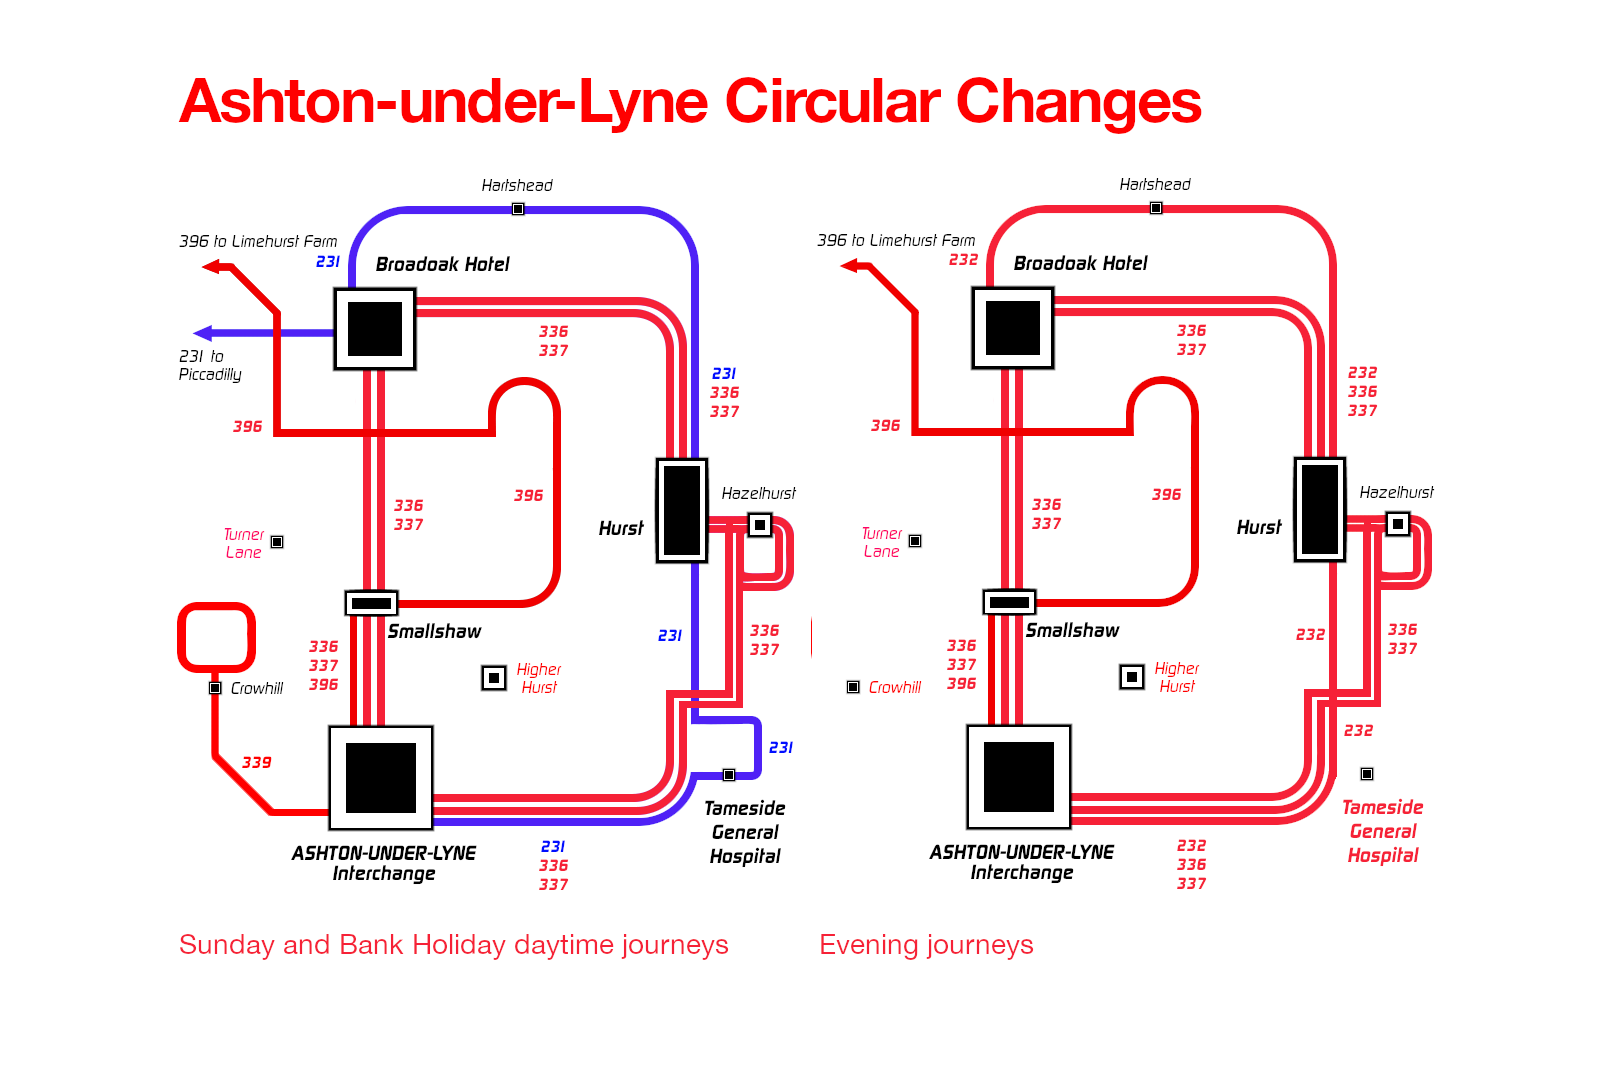 Ashton-under-Lyne circular changes map (evening, Sunday, and Bank Holiday journeys).